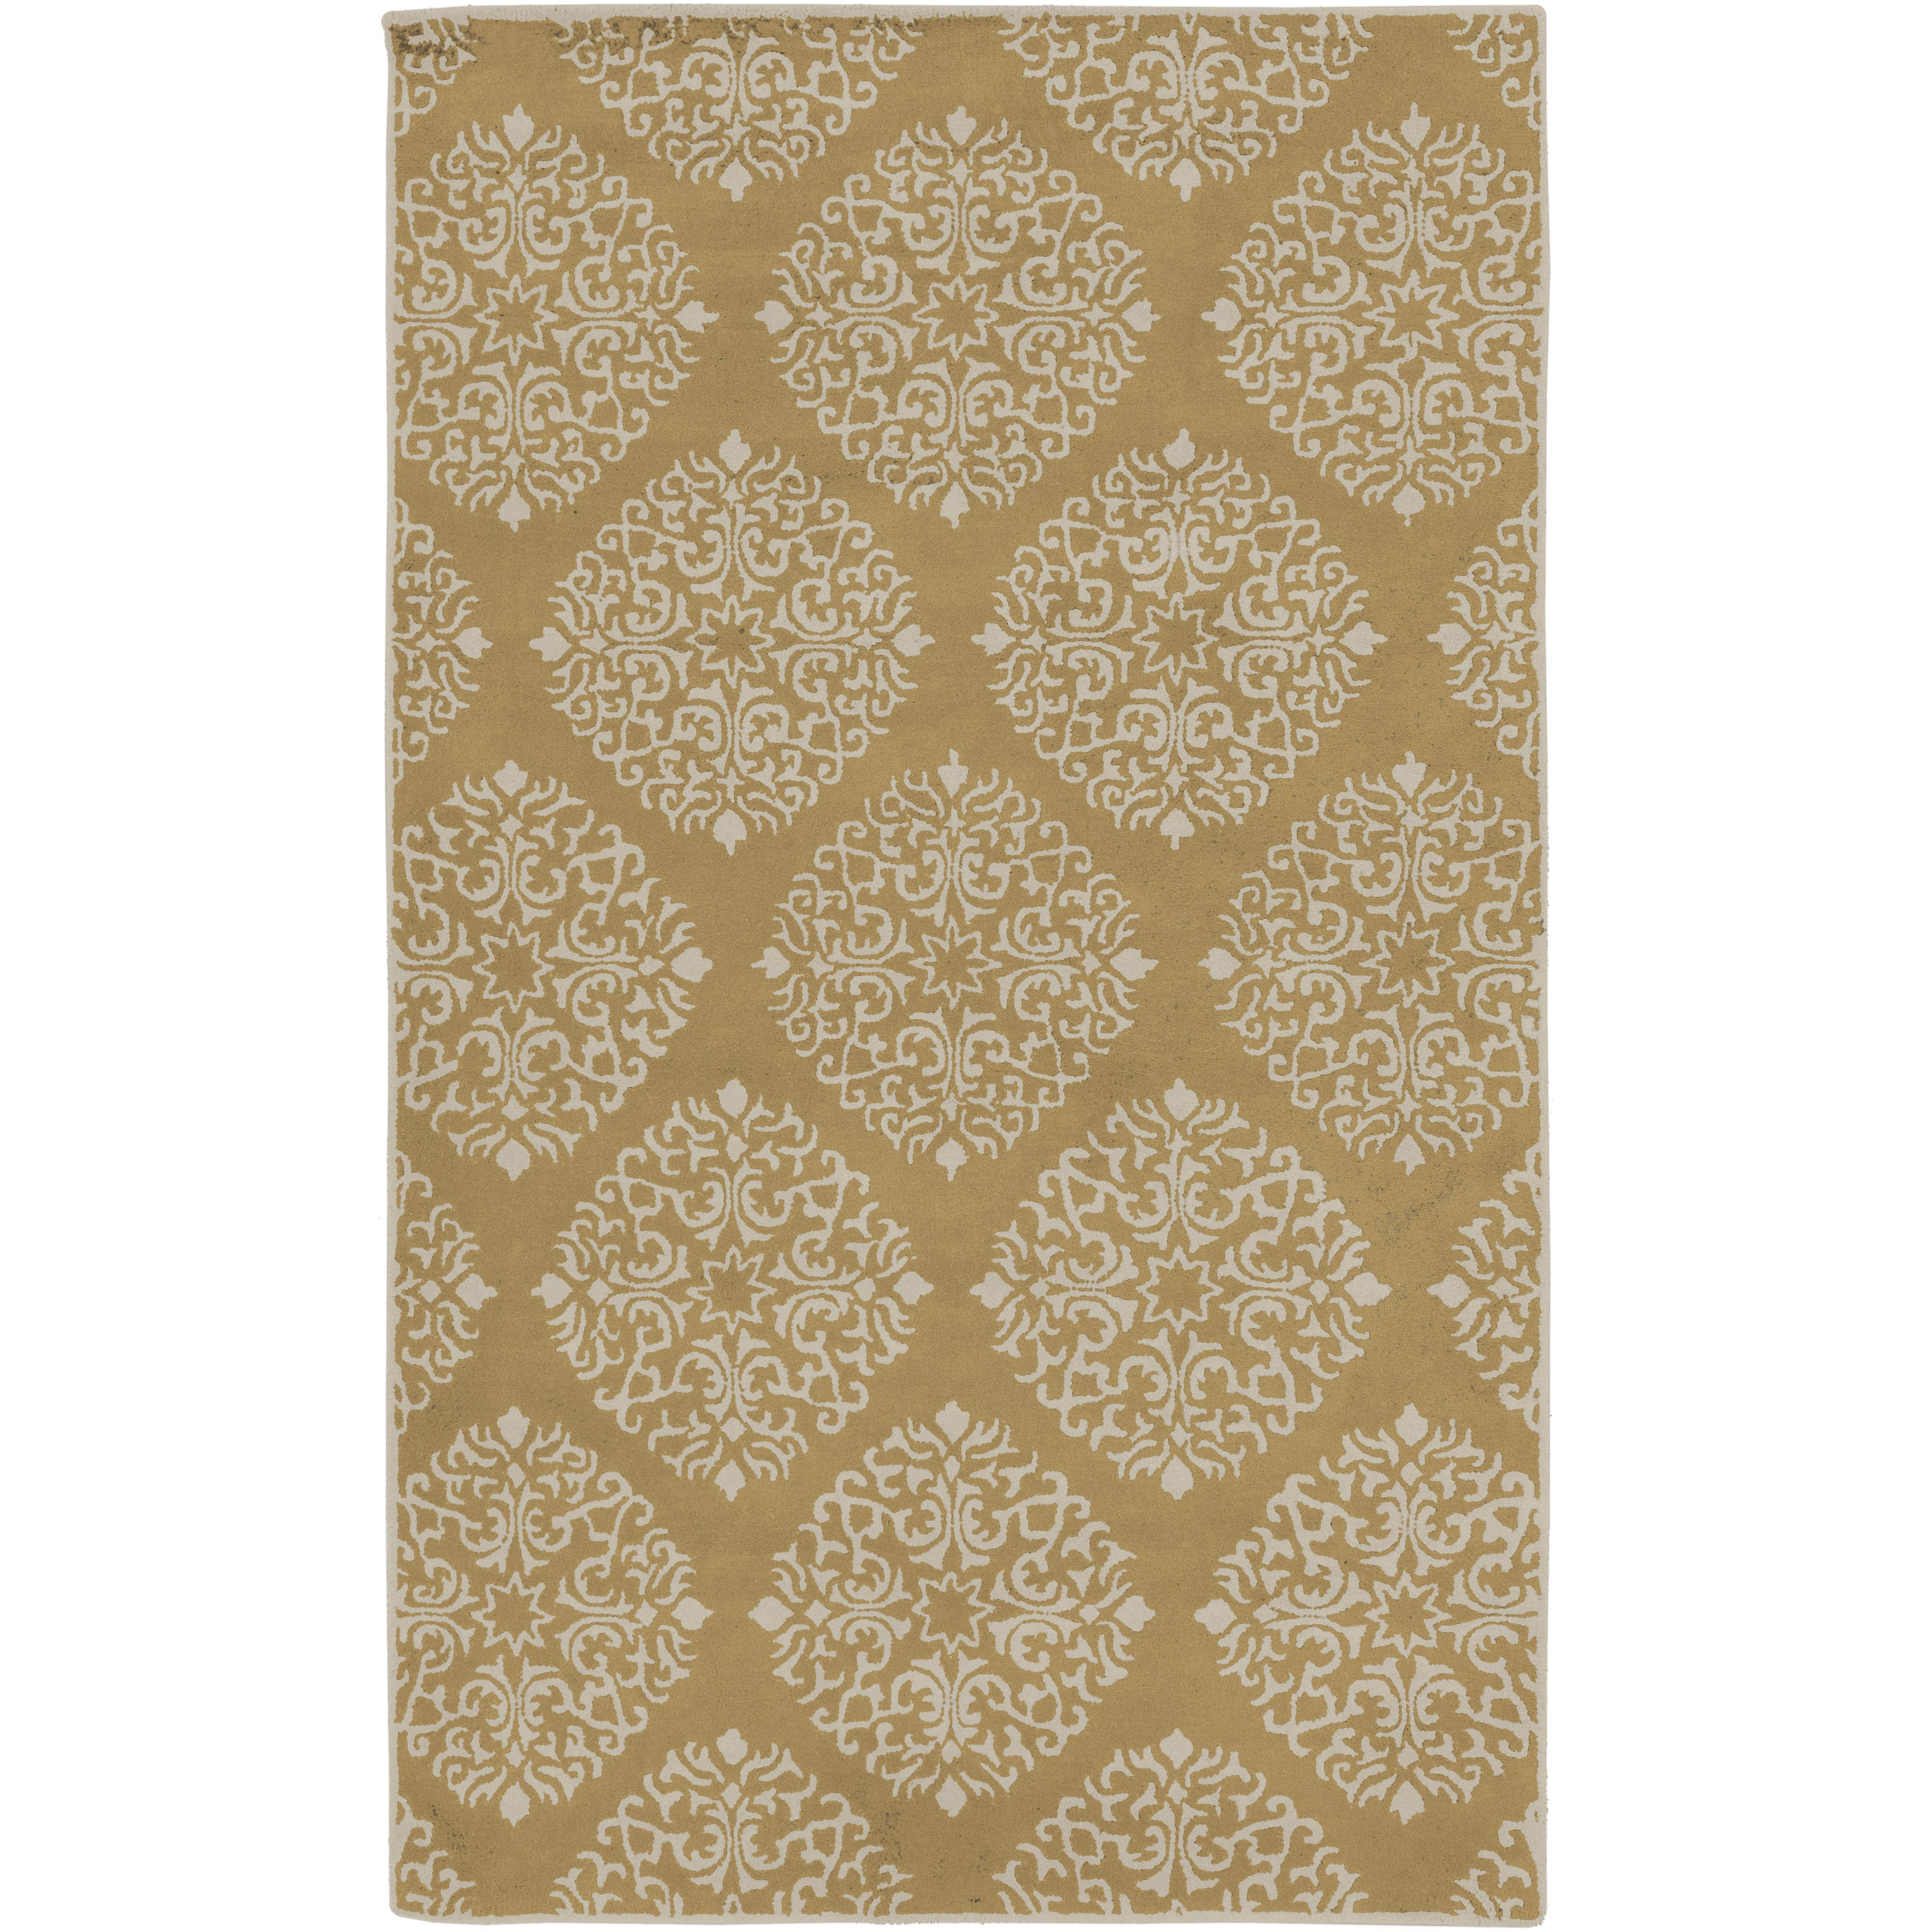 "Surya Rugs Chapman Lane 3'3"" x 5'3"" - Item Number: CHLN9008-3353"